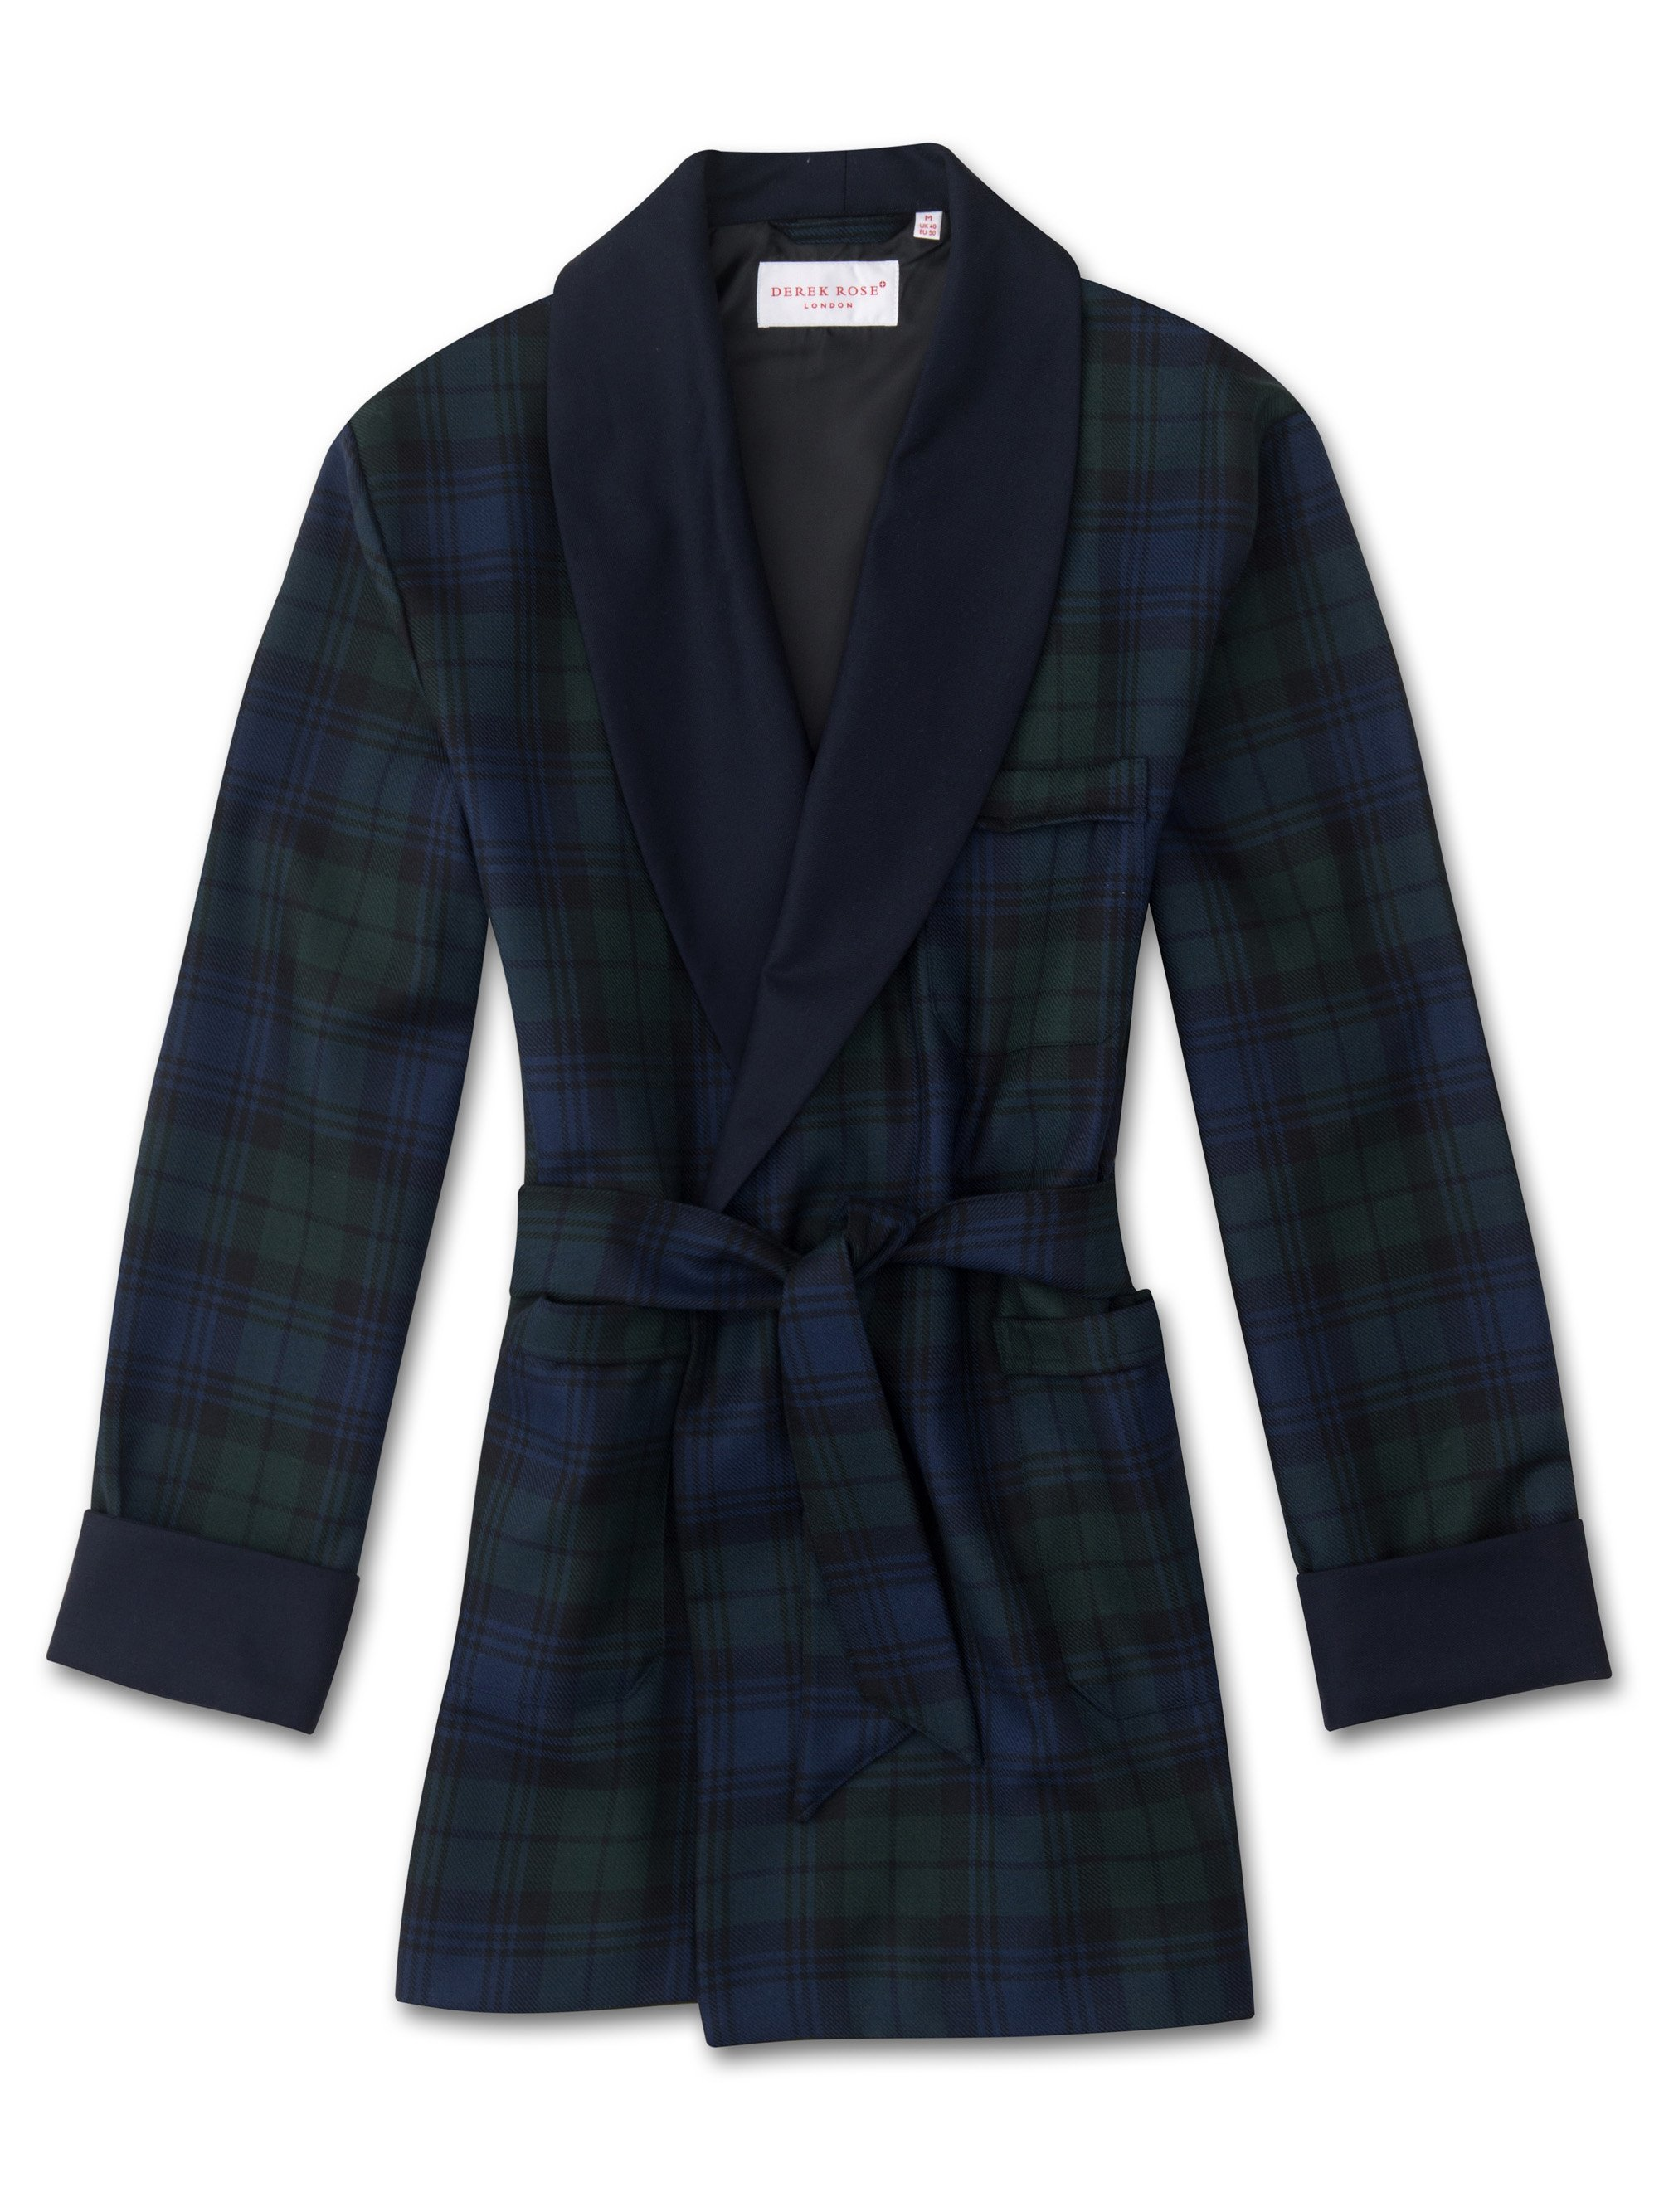 Men's Smoking Jacket Tartan Pure Wool Black Watch